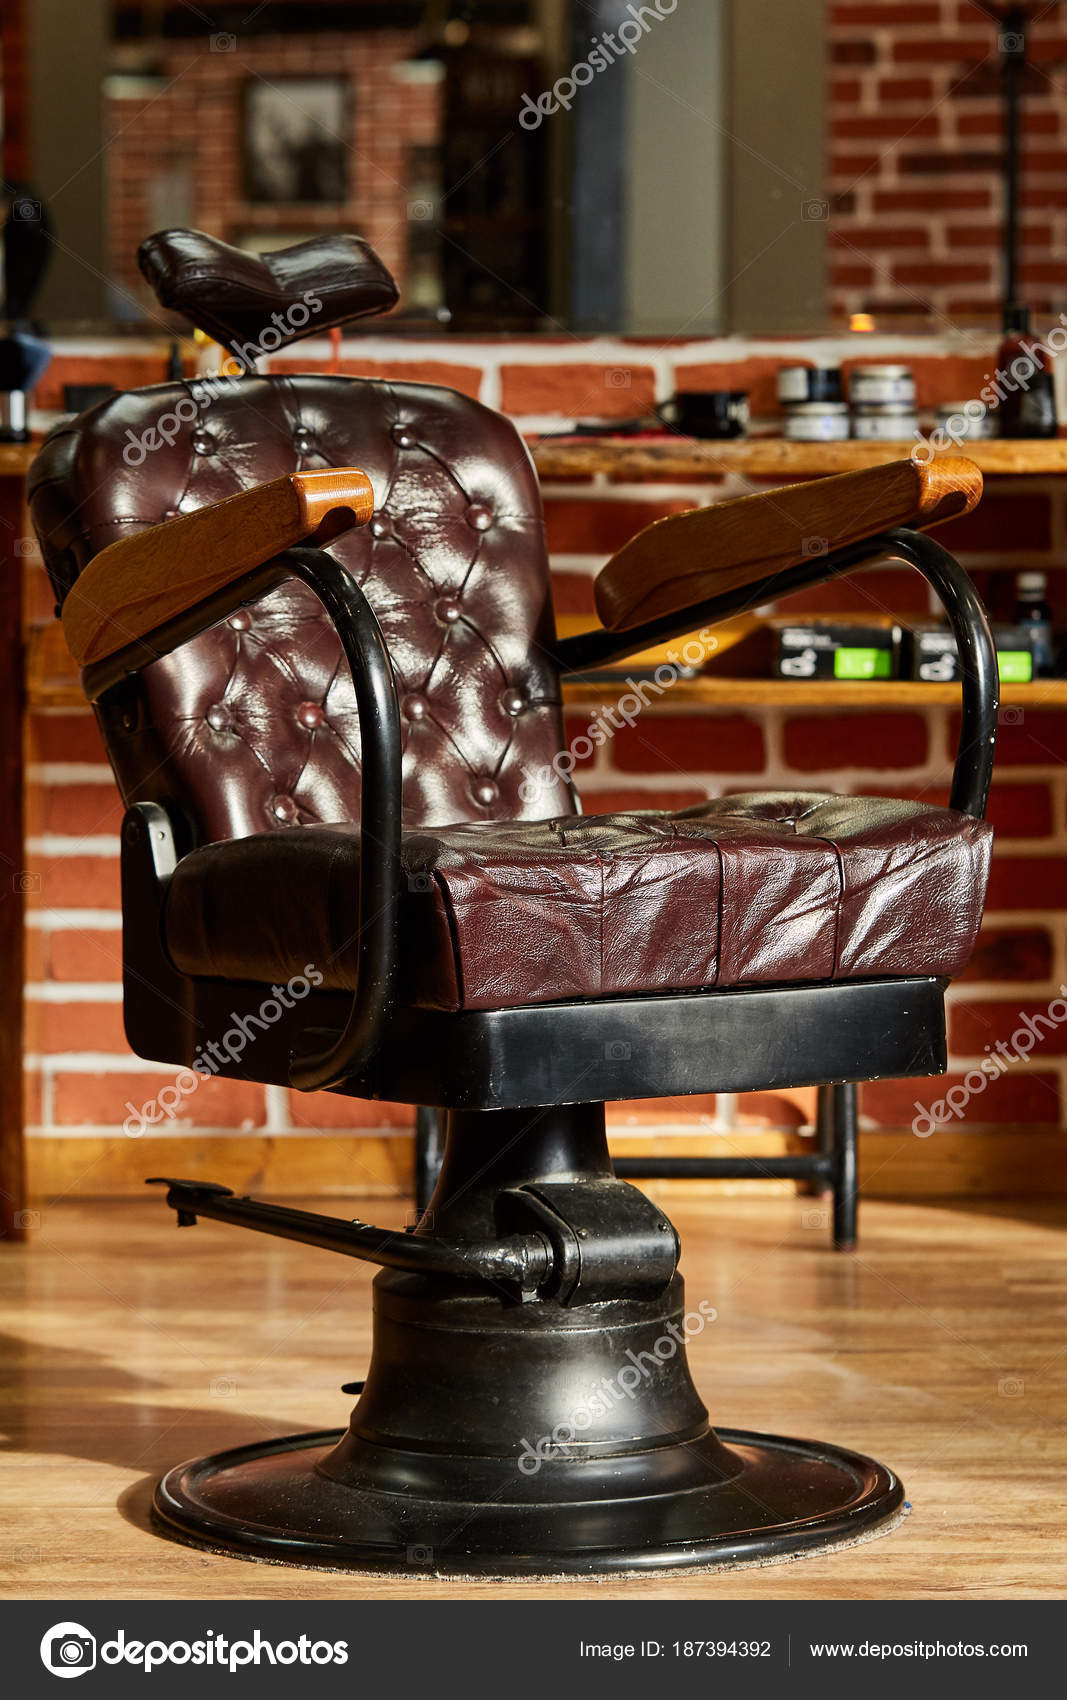 Barber Shop, Hairdresser Chairs Made From Brown Leather. Retro Leather Chair  Barber Shop In Vintage Style. Vintage Equipment. Male Beauty And Care.